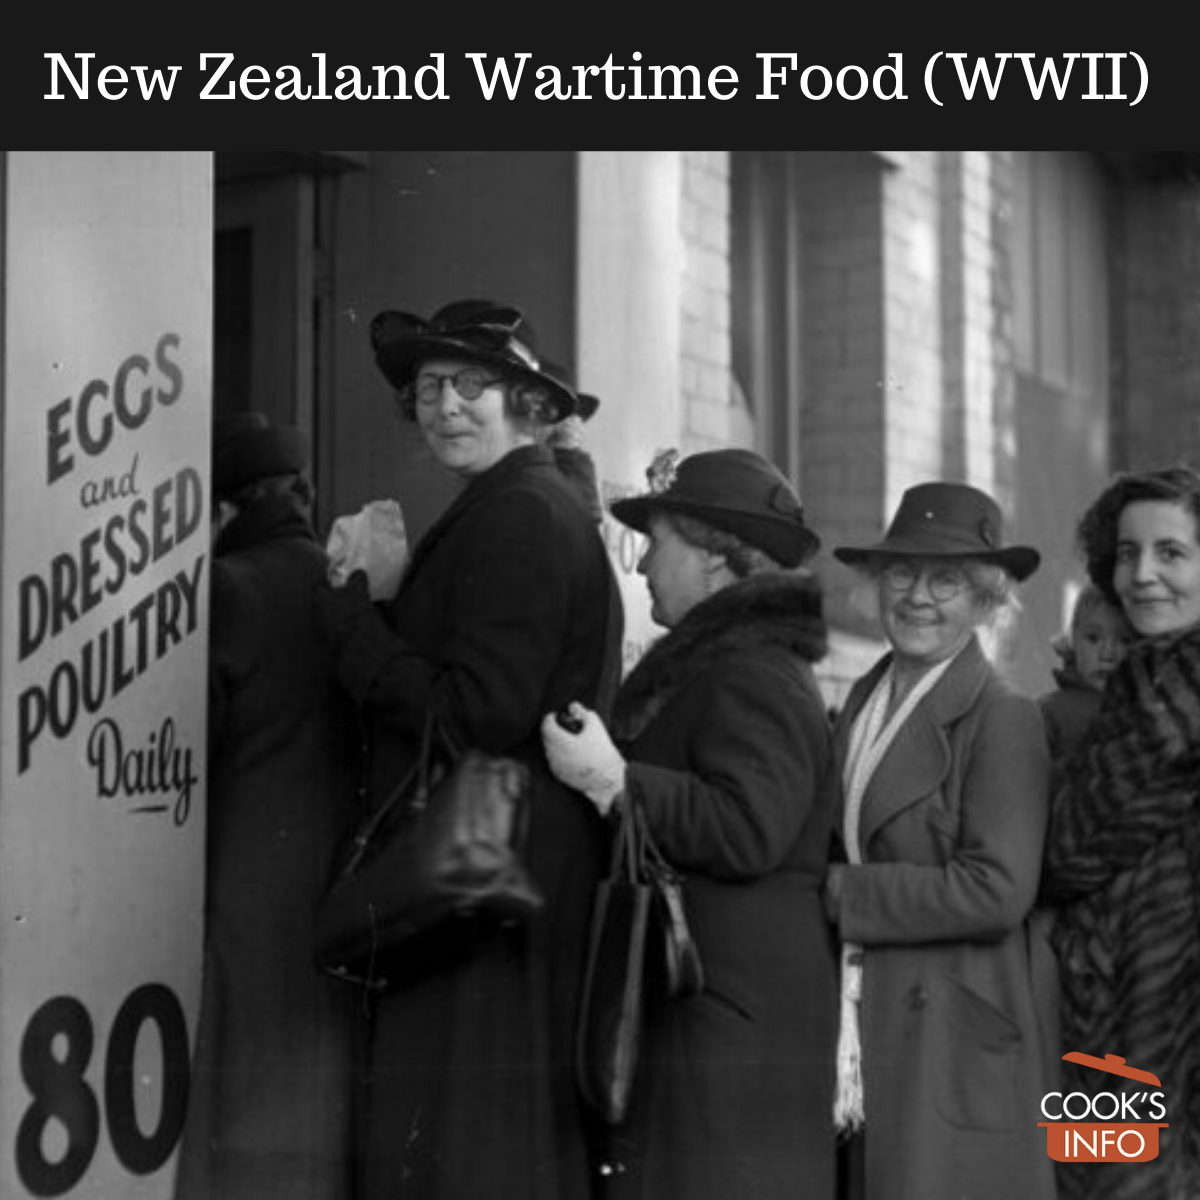 Women queuing for rationed goods during World War 2, New Zealand.